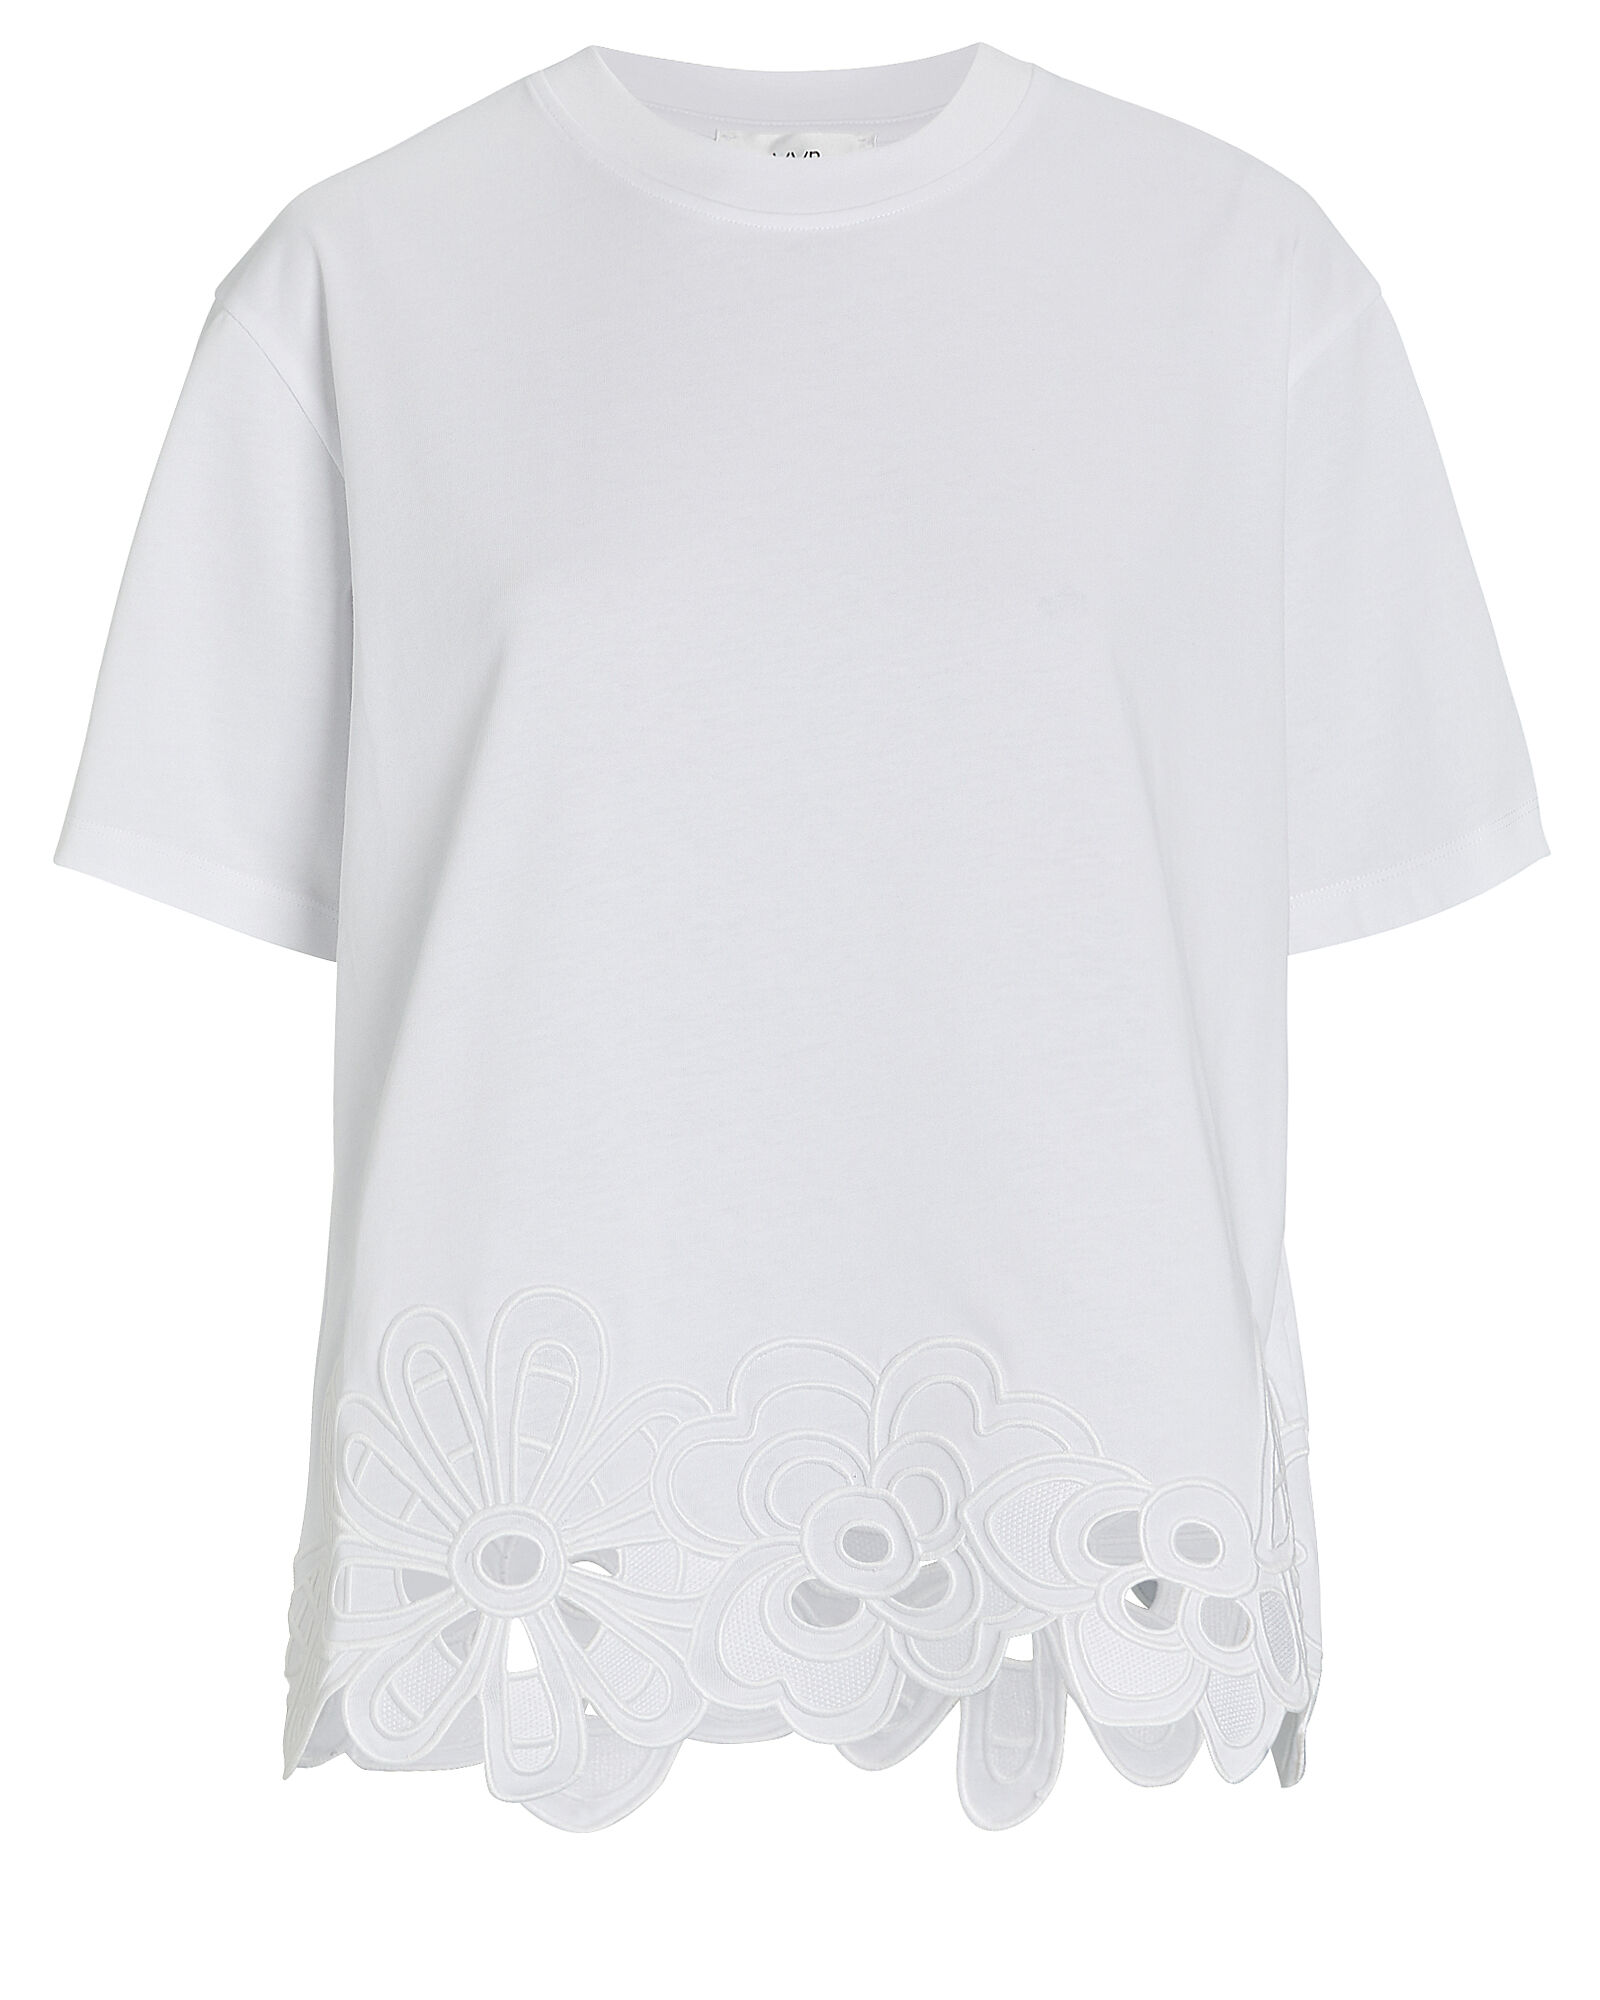 Embroidered Cotton T-Shirt, WHITE, hi-res